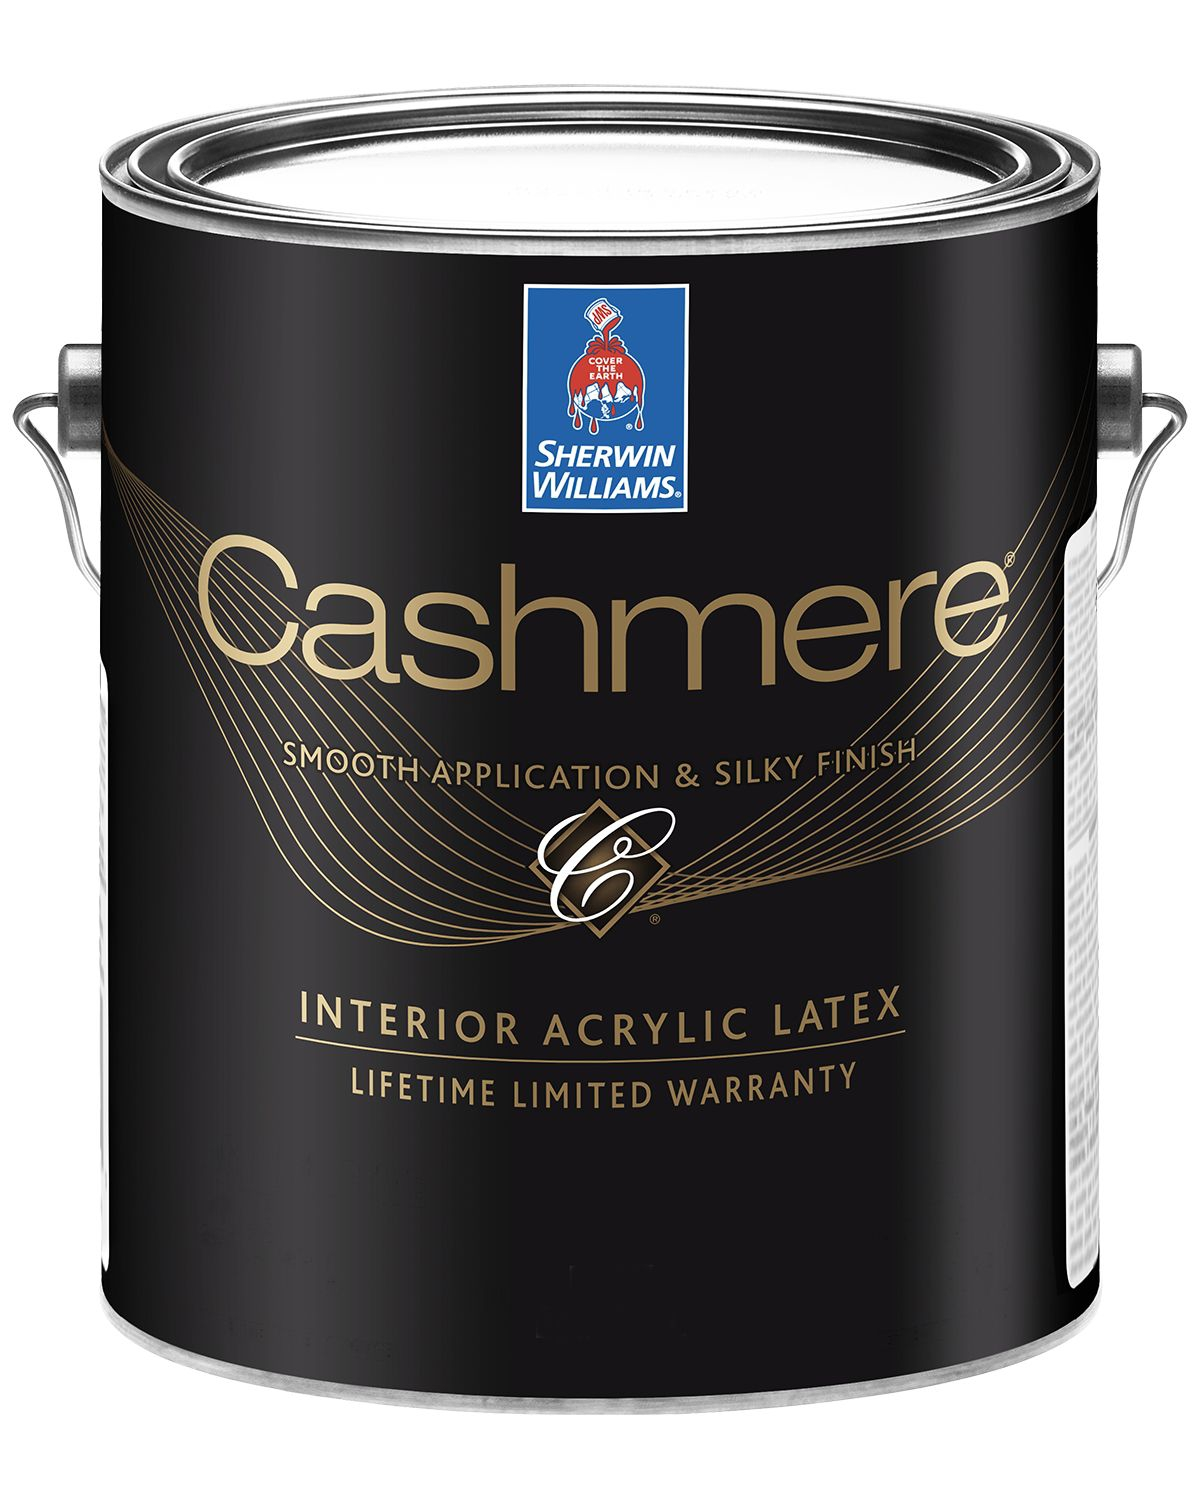 Sherwin Williams Cashmere Interior Paint Reviews